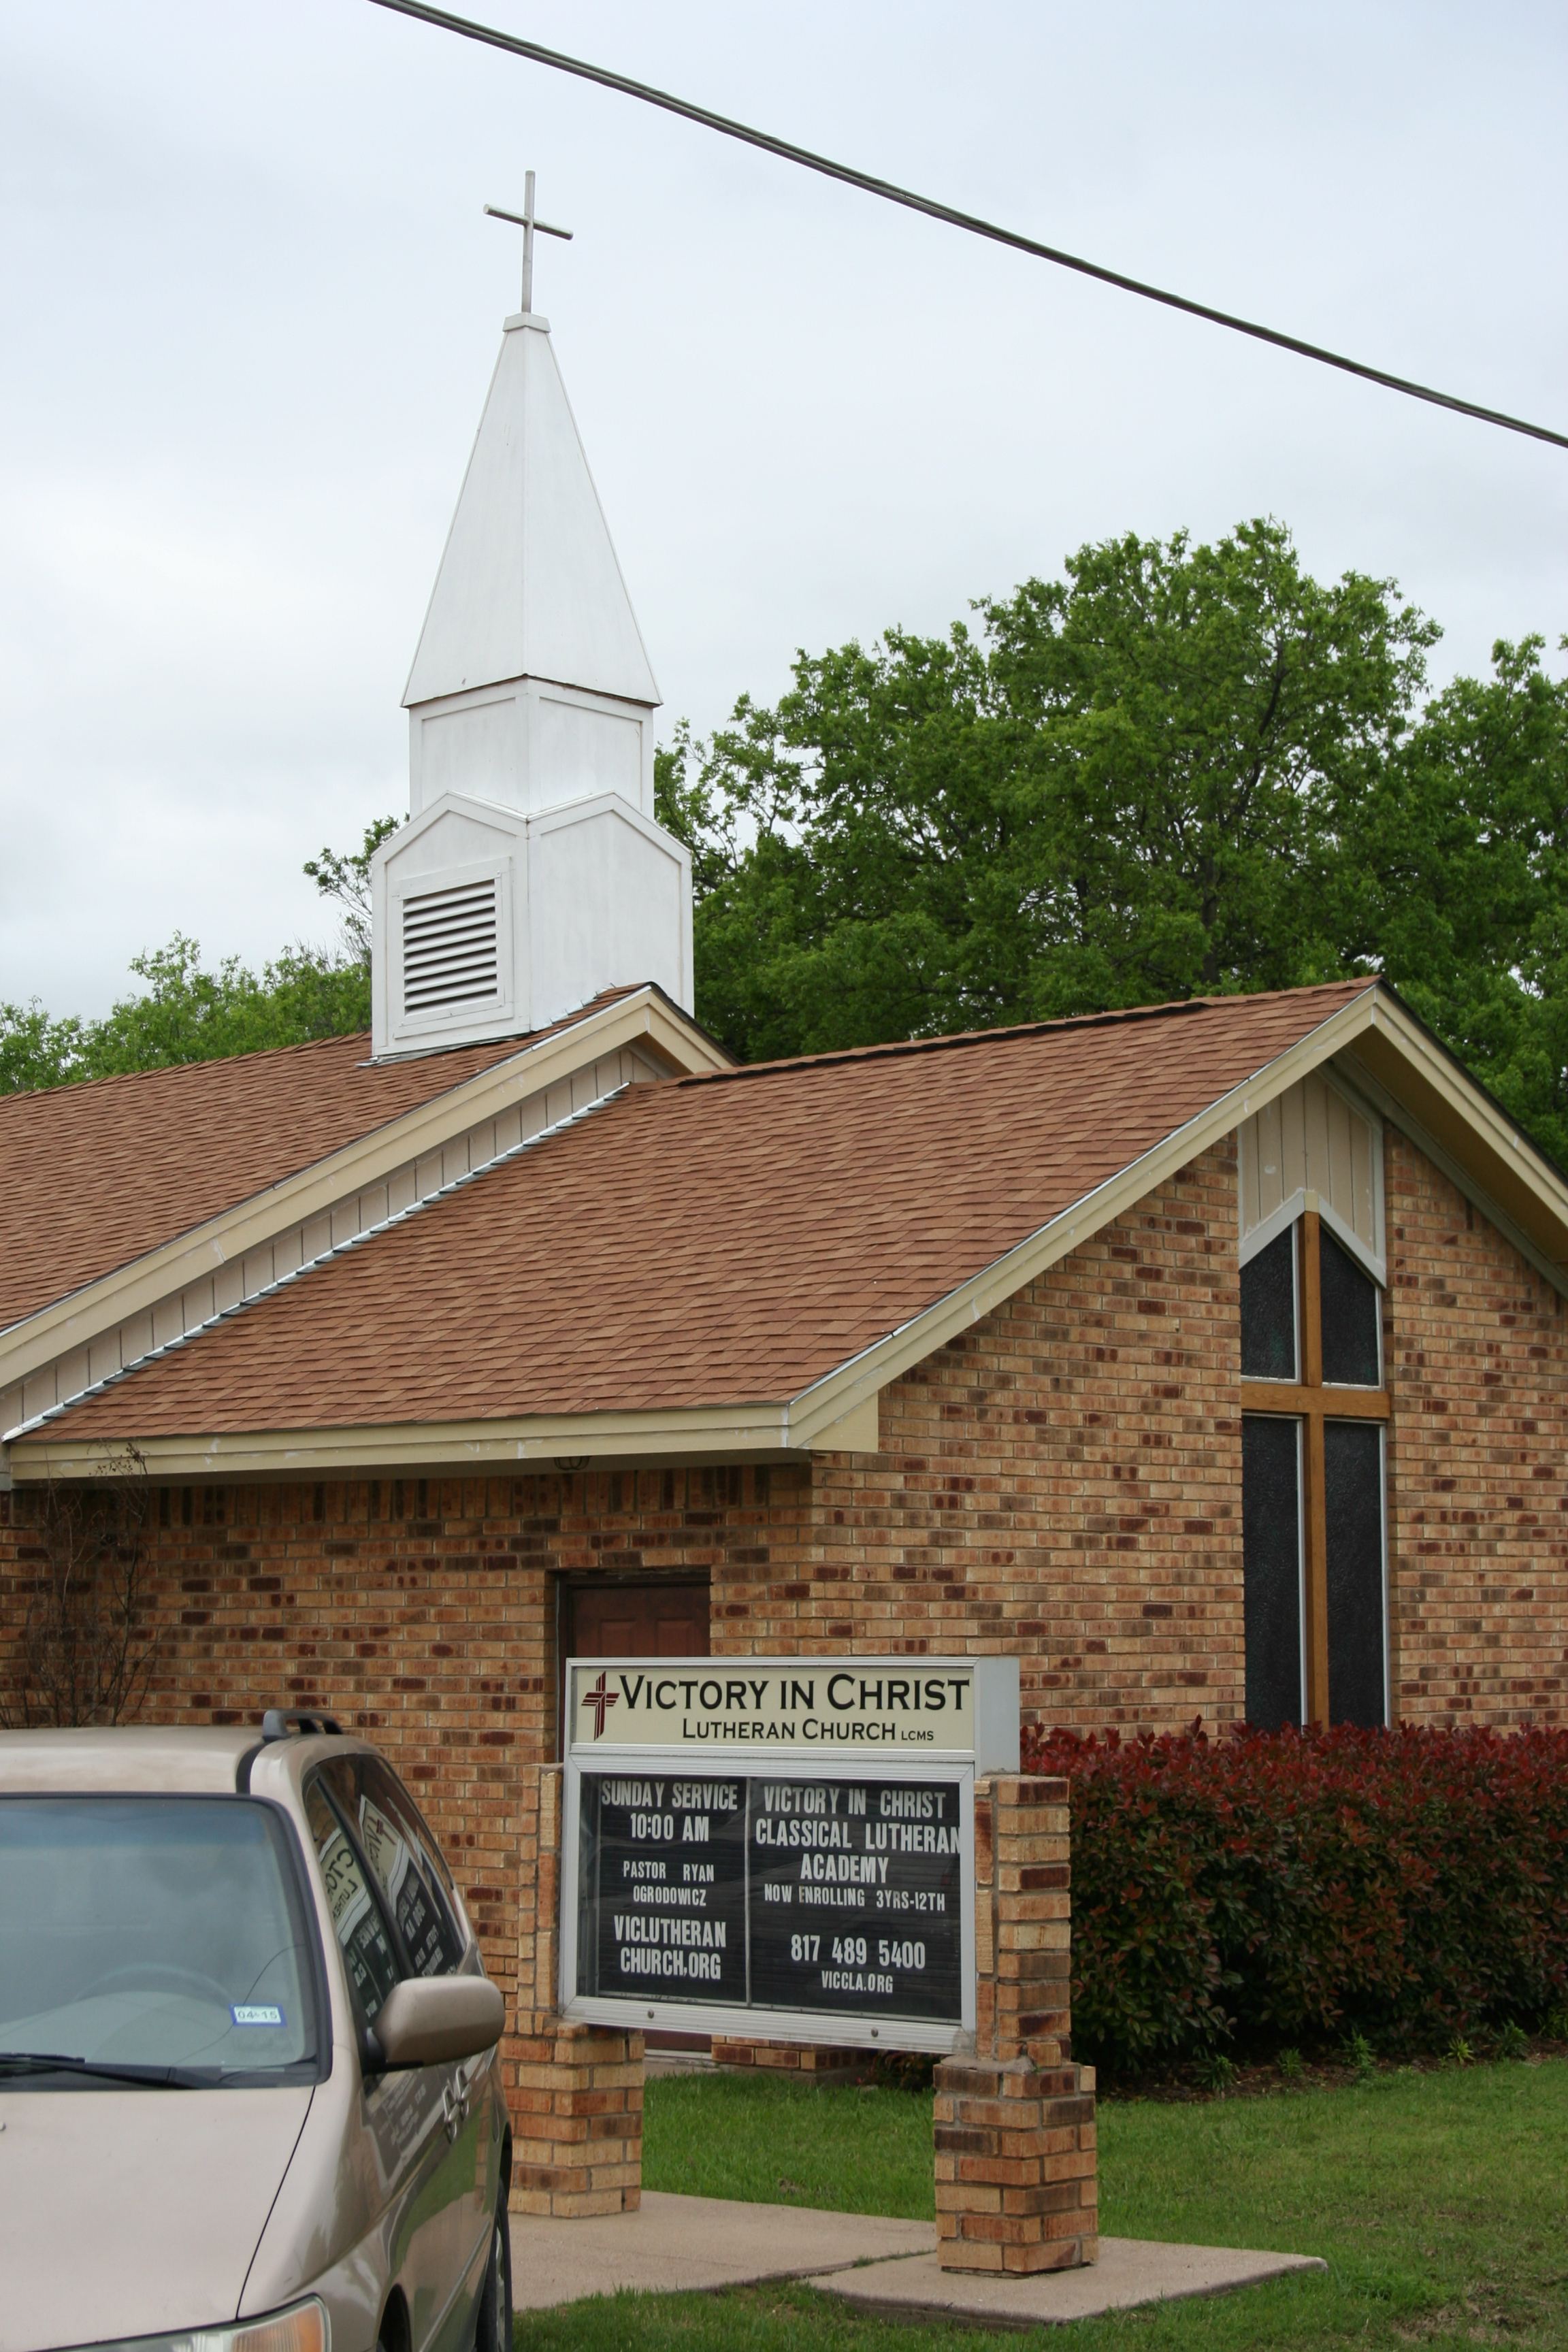 Victory in Christ Lutheran Church, Newark, Texas